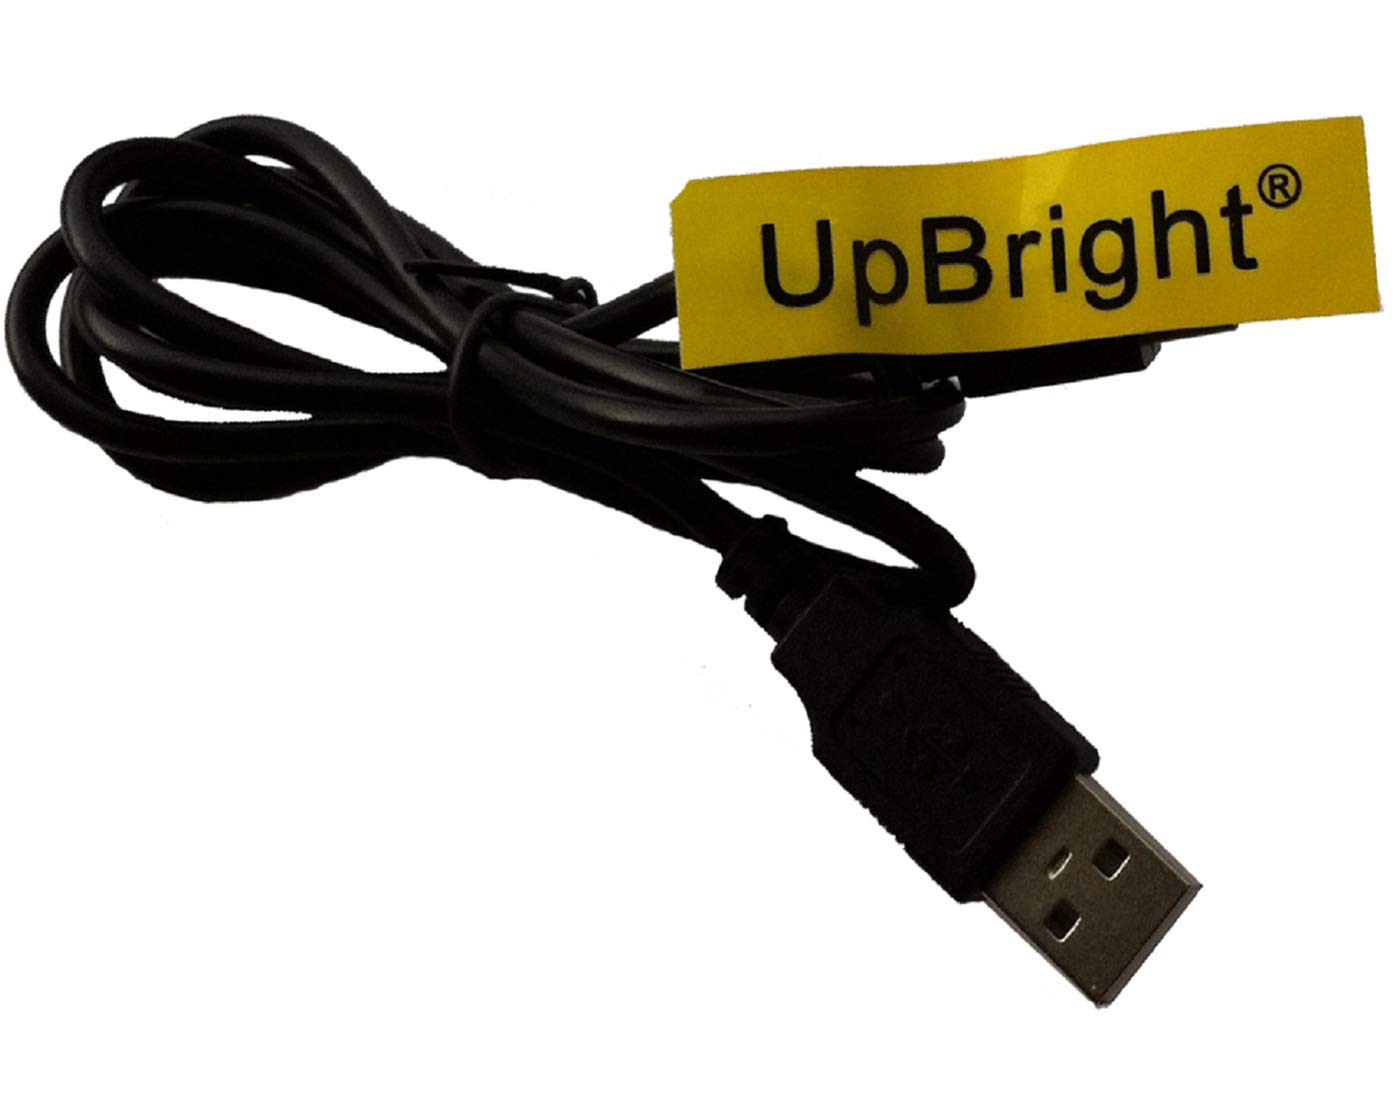 UpBright New USB Cable Computer PC Laptop Data Sync Cord Compatible with Brother ImageCenter ADS-1500W ADS-1000W Printer ADS1500W ADS1000W Compact Color Desktop Scanner